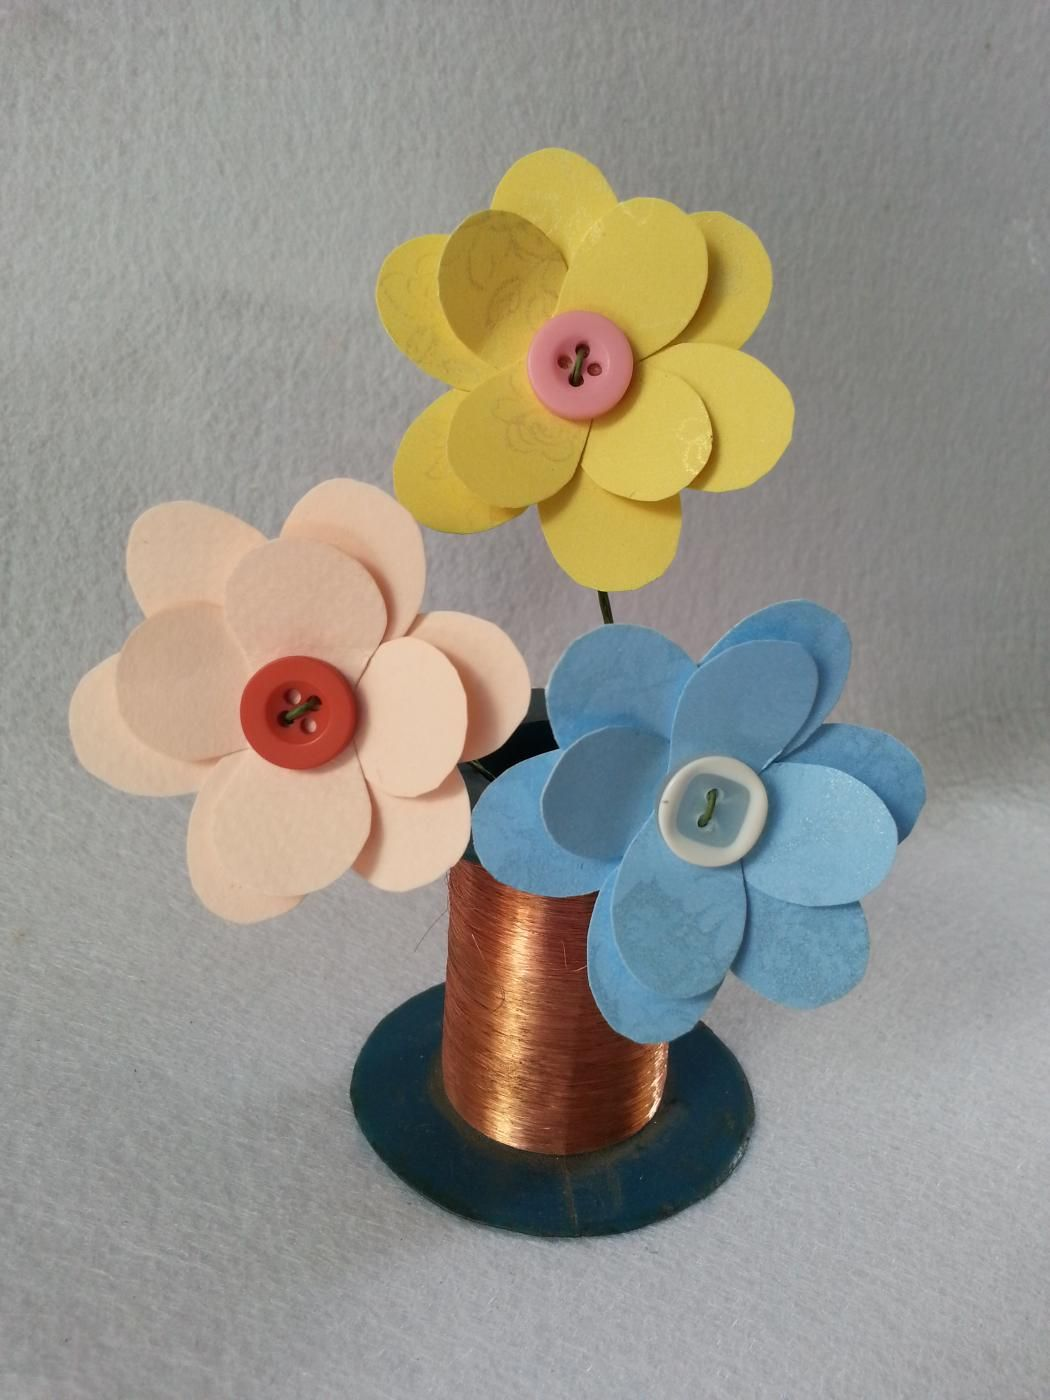 How to make paper flower paper flower tutorial flower tutorial easy paper flower tutorial for your craft projects make them for scrapbooking party decorations mightylinksfo